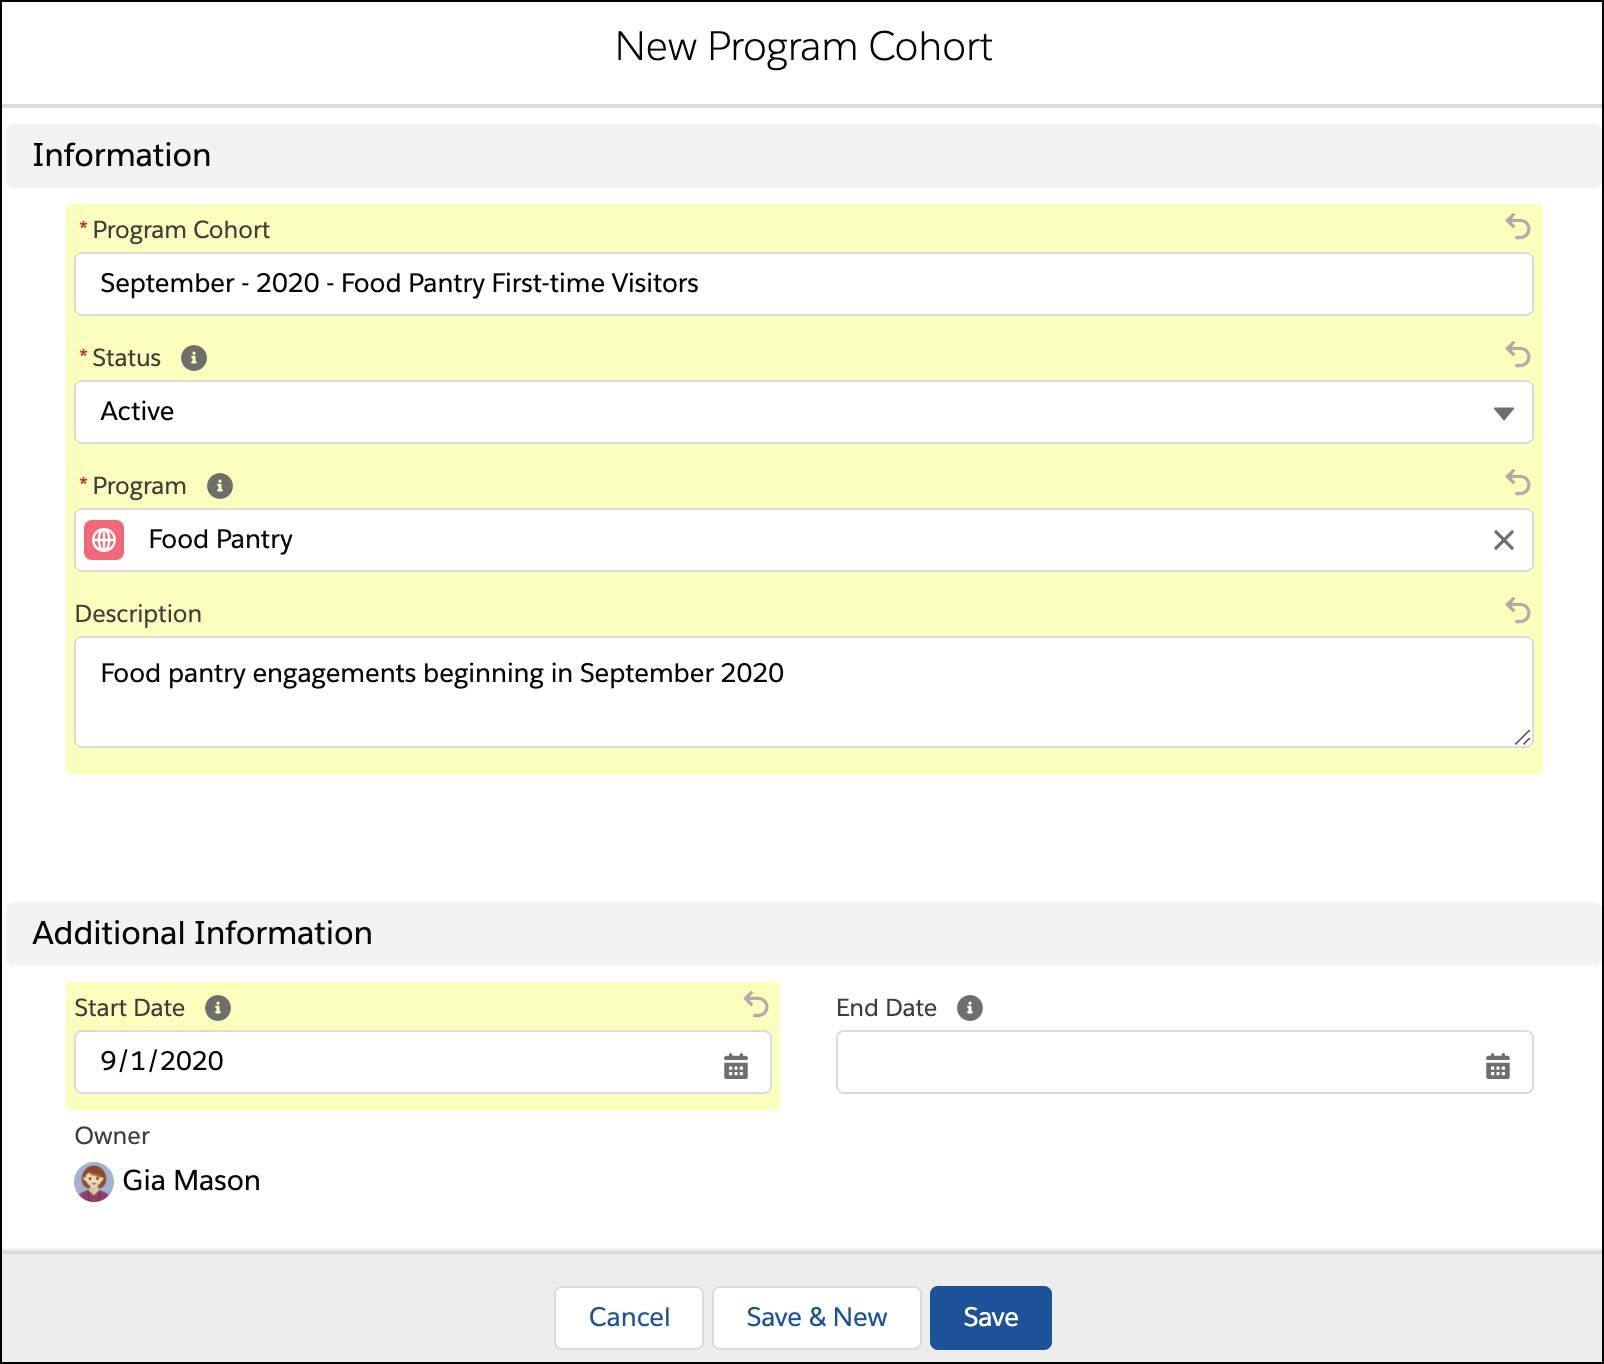 The New Program Cohort interface with Gia's information in the fields